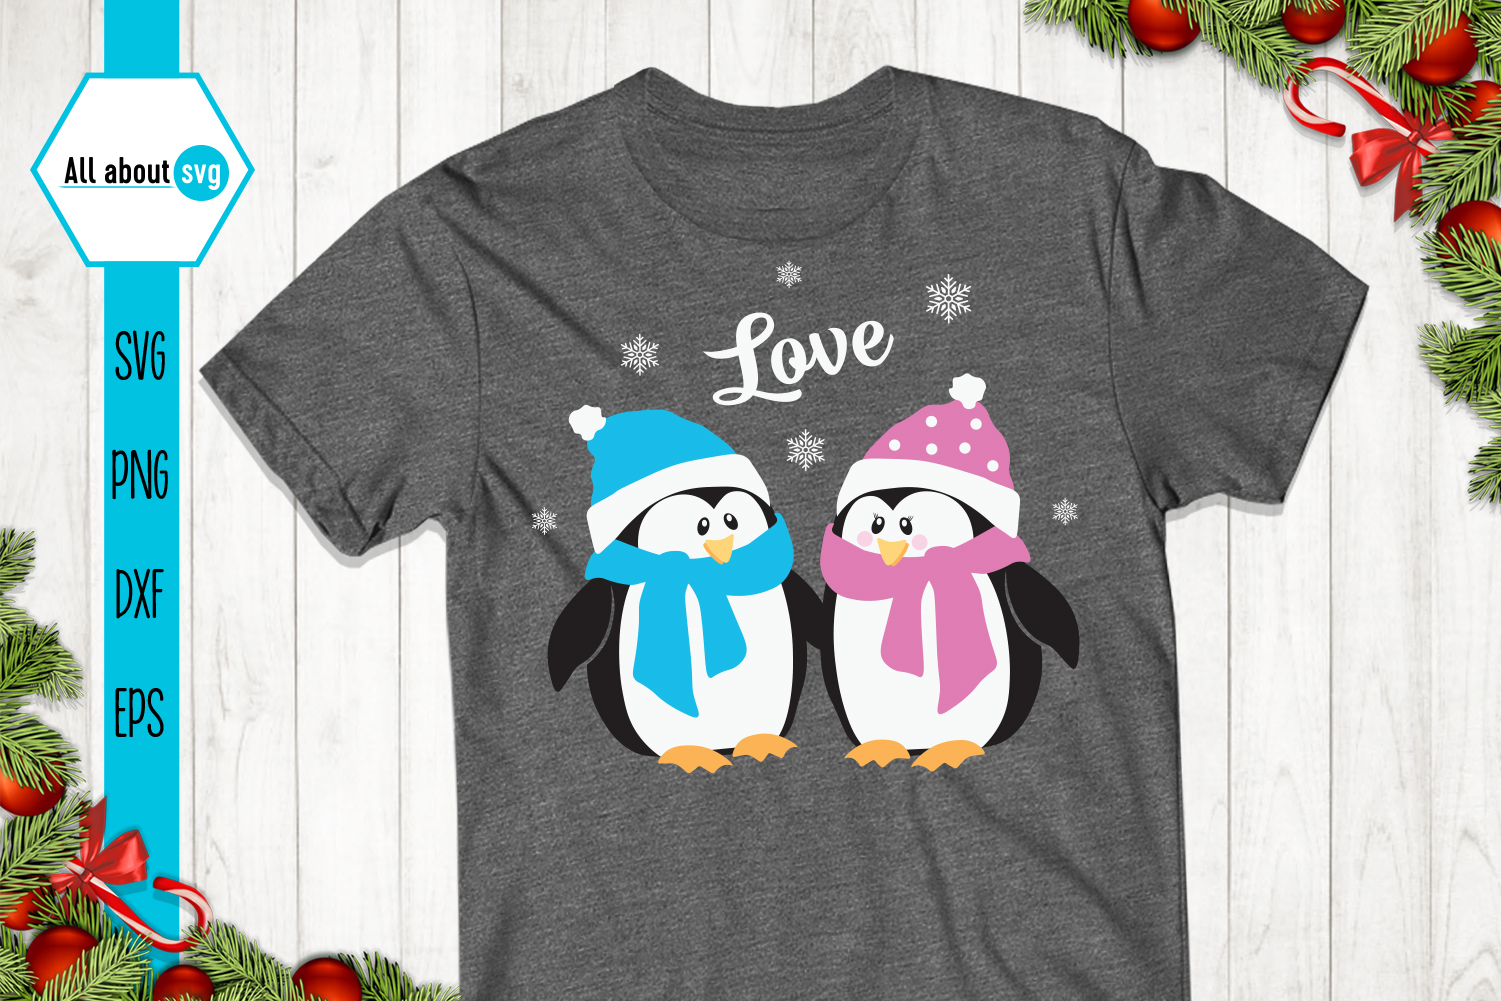 Penguins Love Svg example image 2